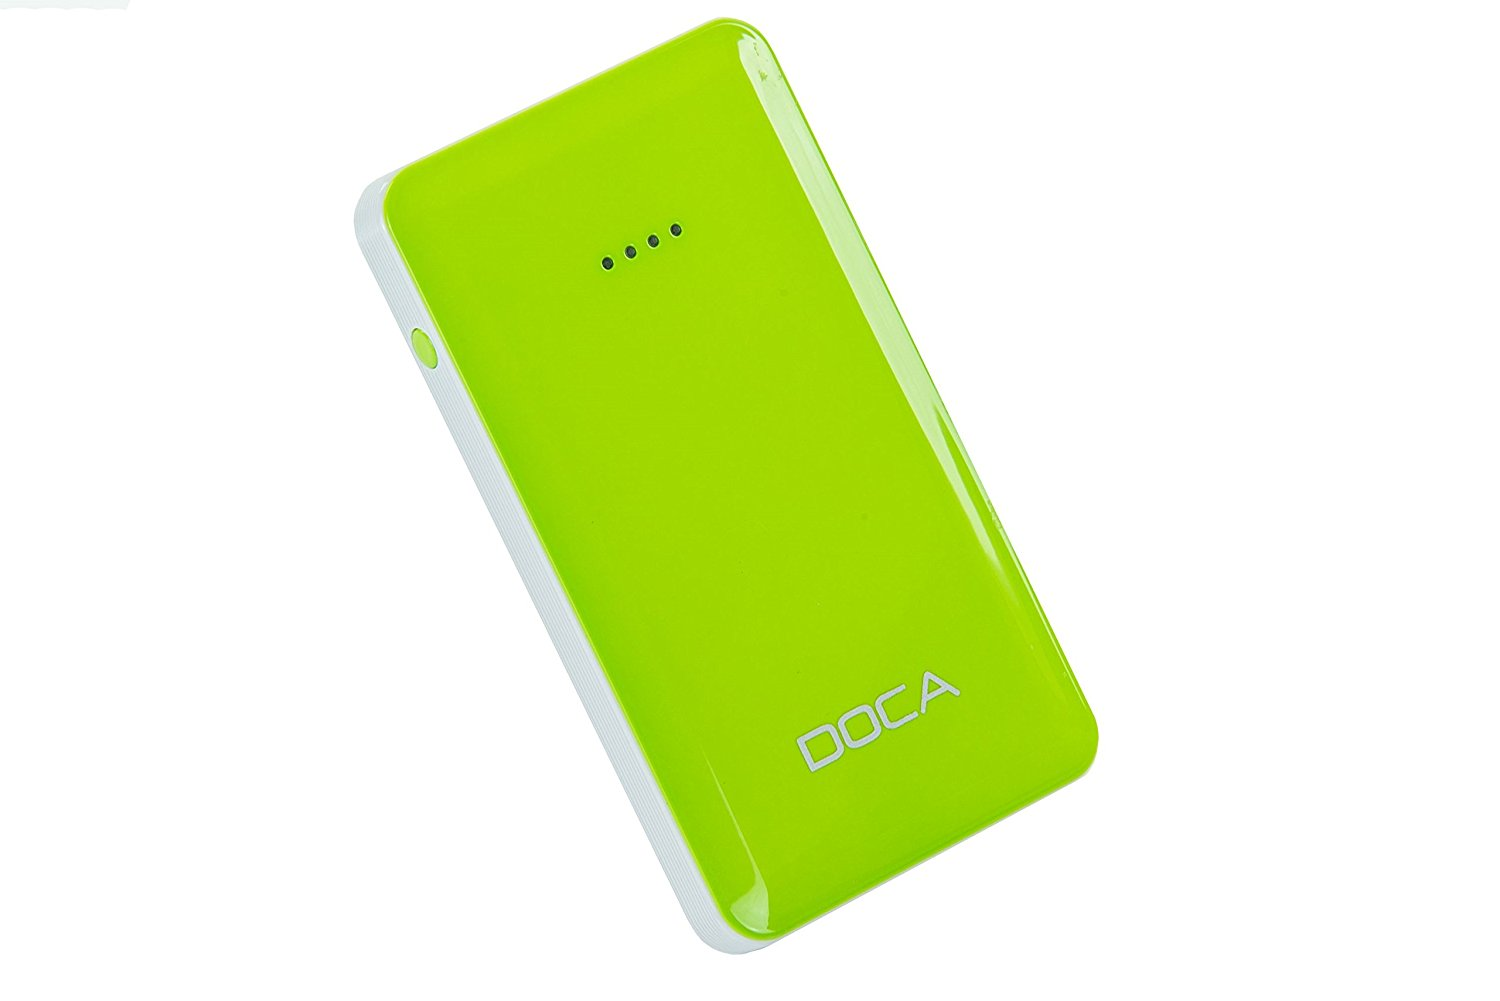 Portable DOCA D569 Charger